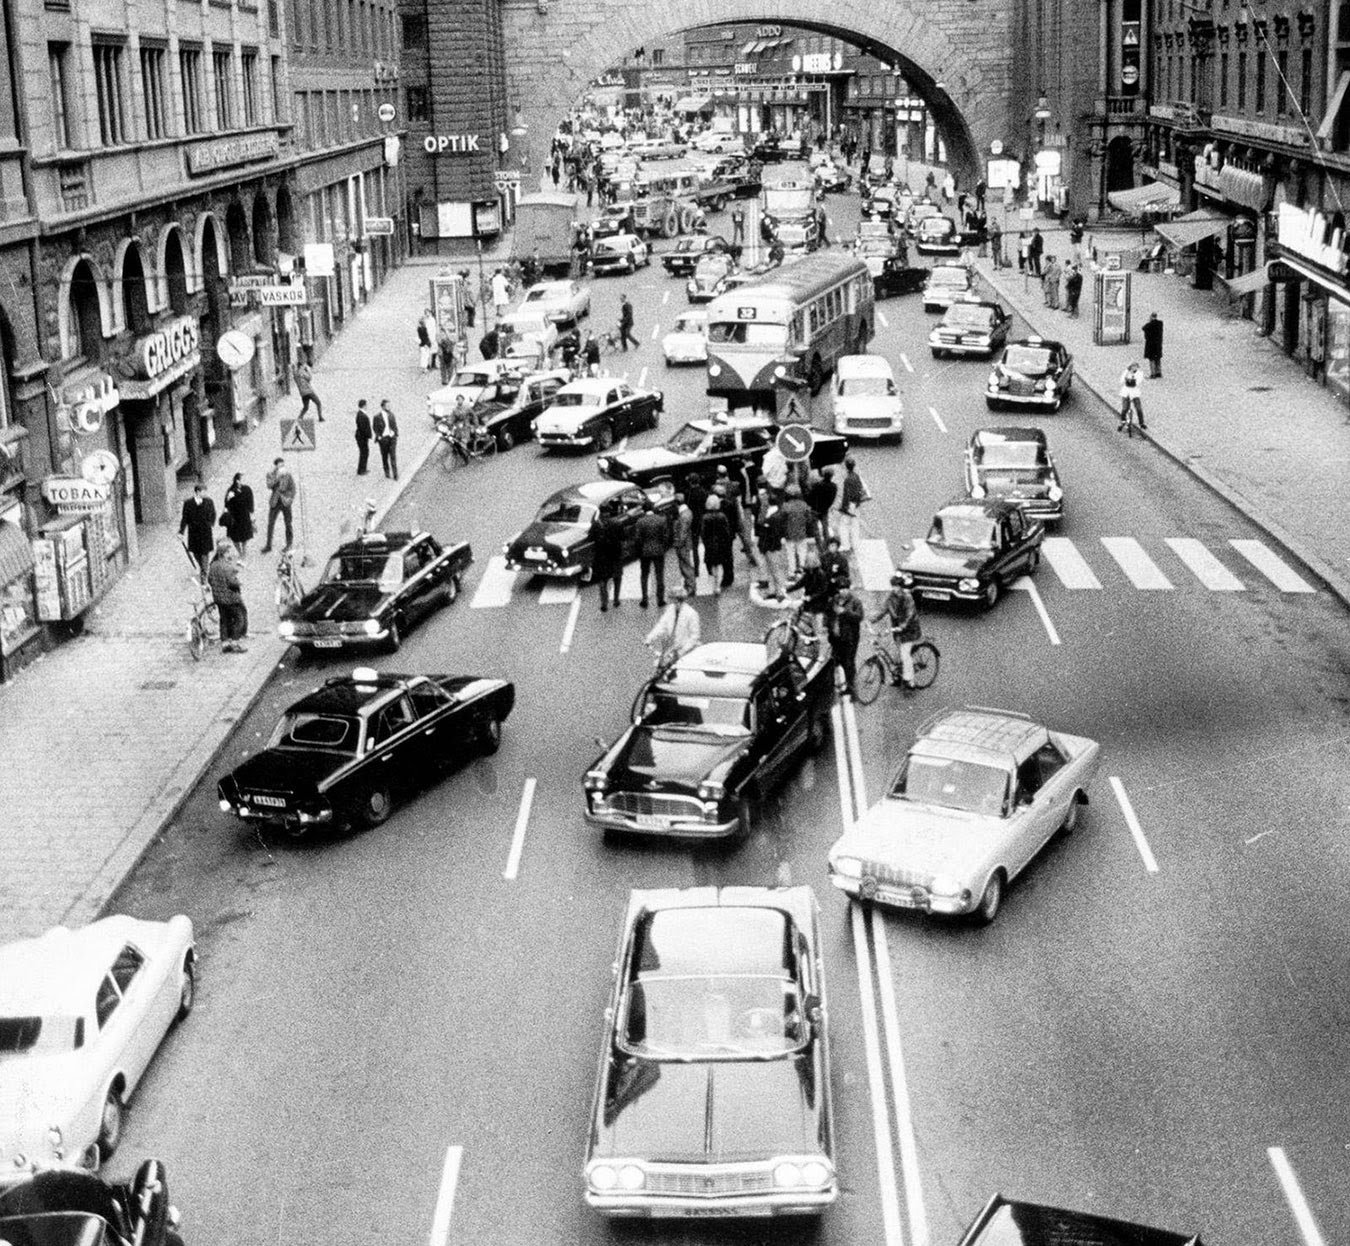 Dagen H, the day Sweden switched sides of the road, 1967 (2).jpg